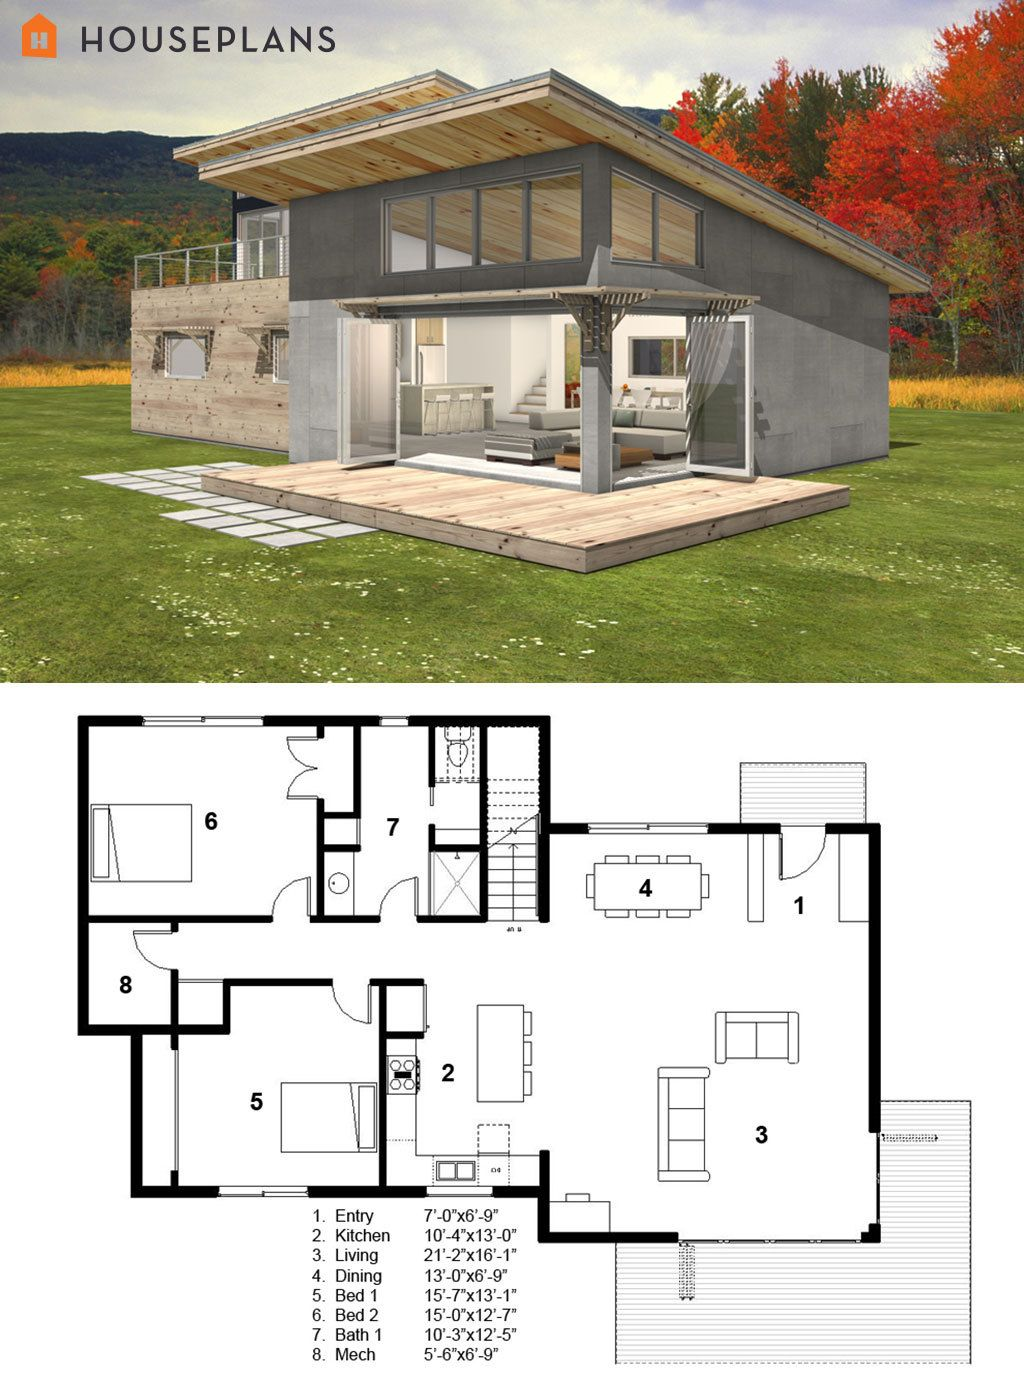 modern style house plan 3 beds baths 2115 sq ft On small modern cabin plans